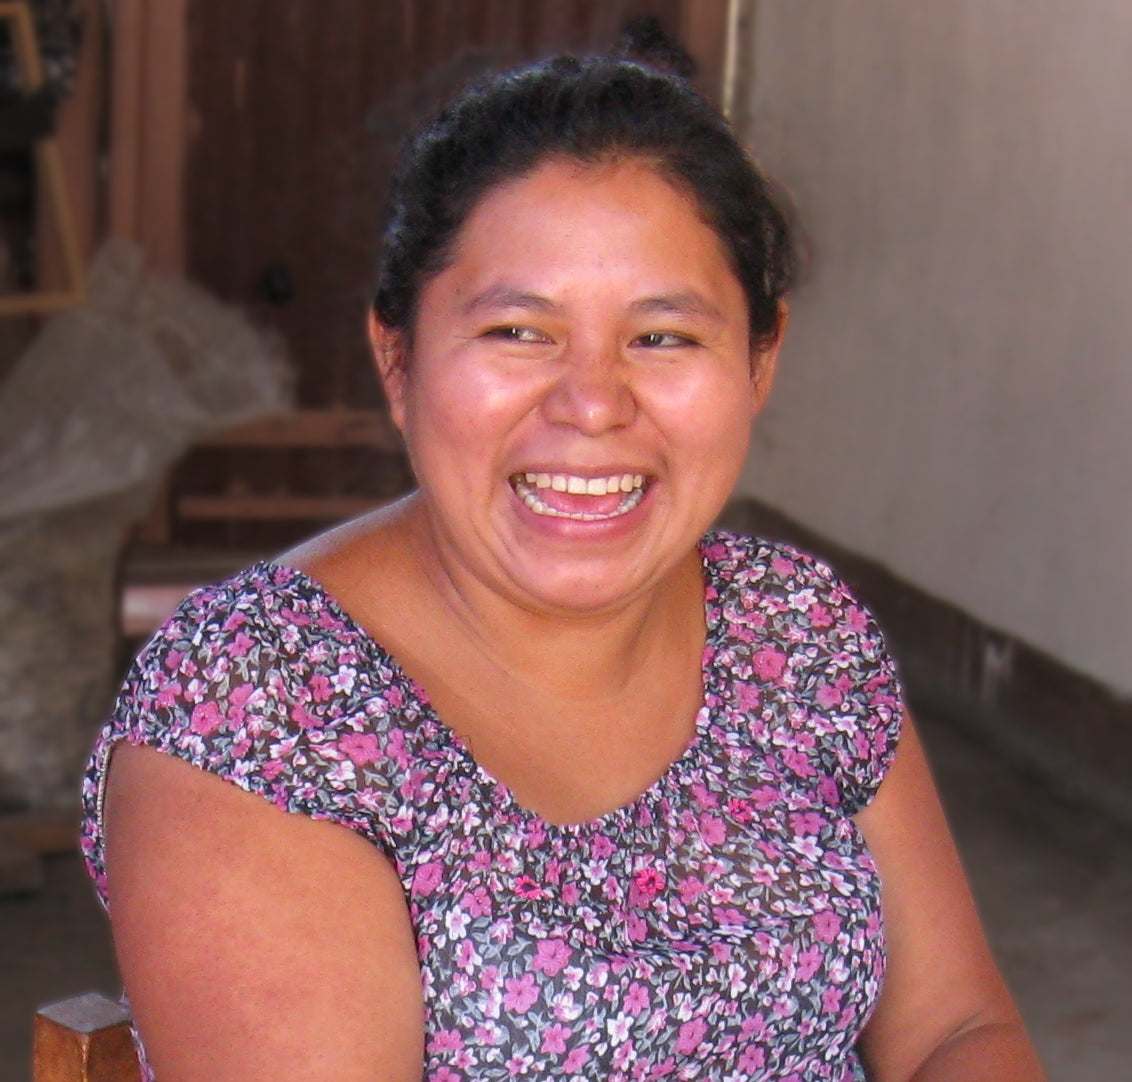 Master Mayan backstrap loom weaver isabel Pérez mendoza headshot for MayaWeavings